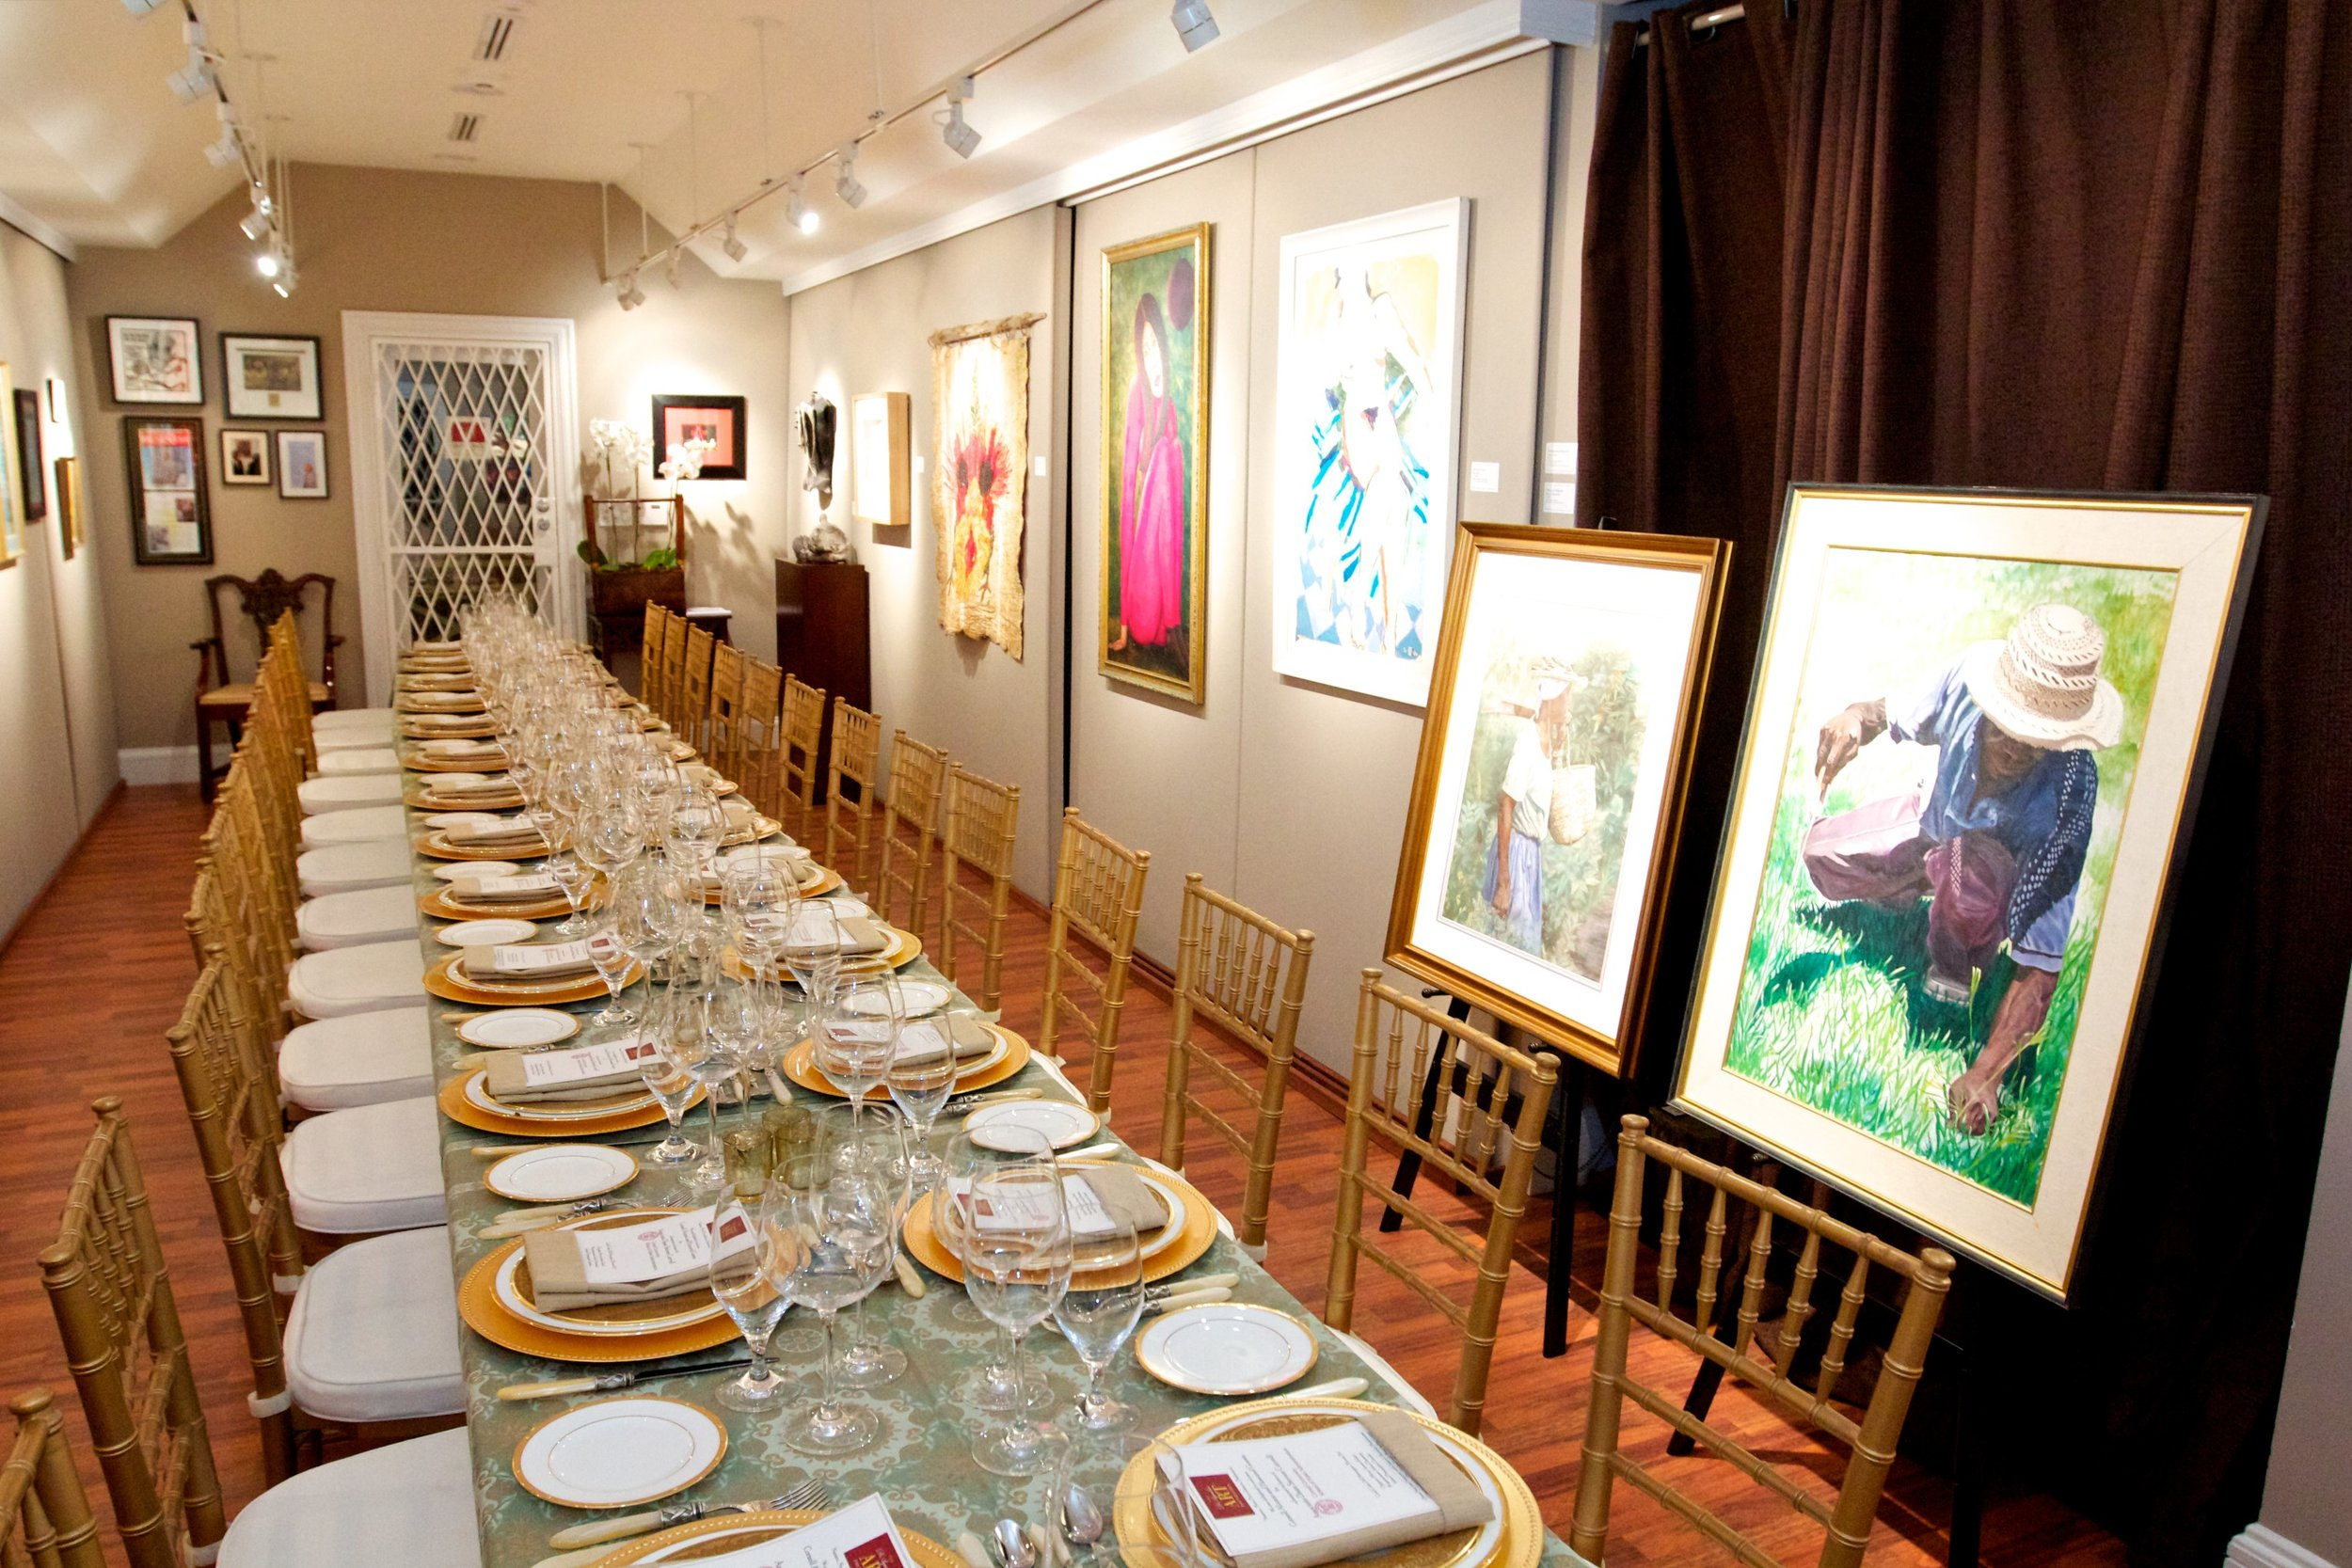 The main gallery space of the D'aguilar Foundation featuring a collection of works by prominent Bahamian artists.